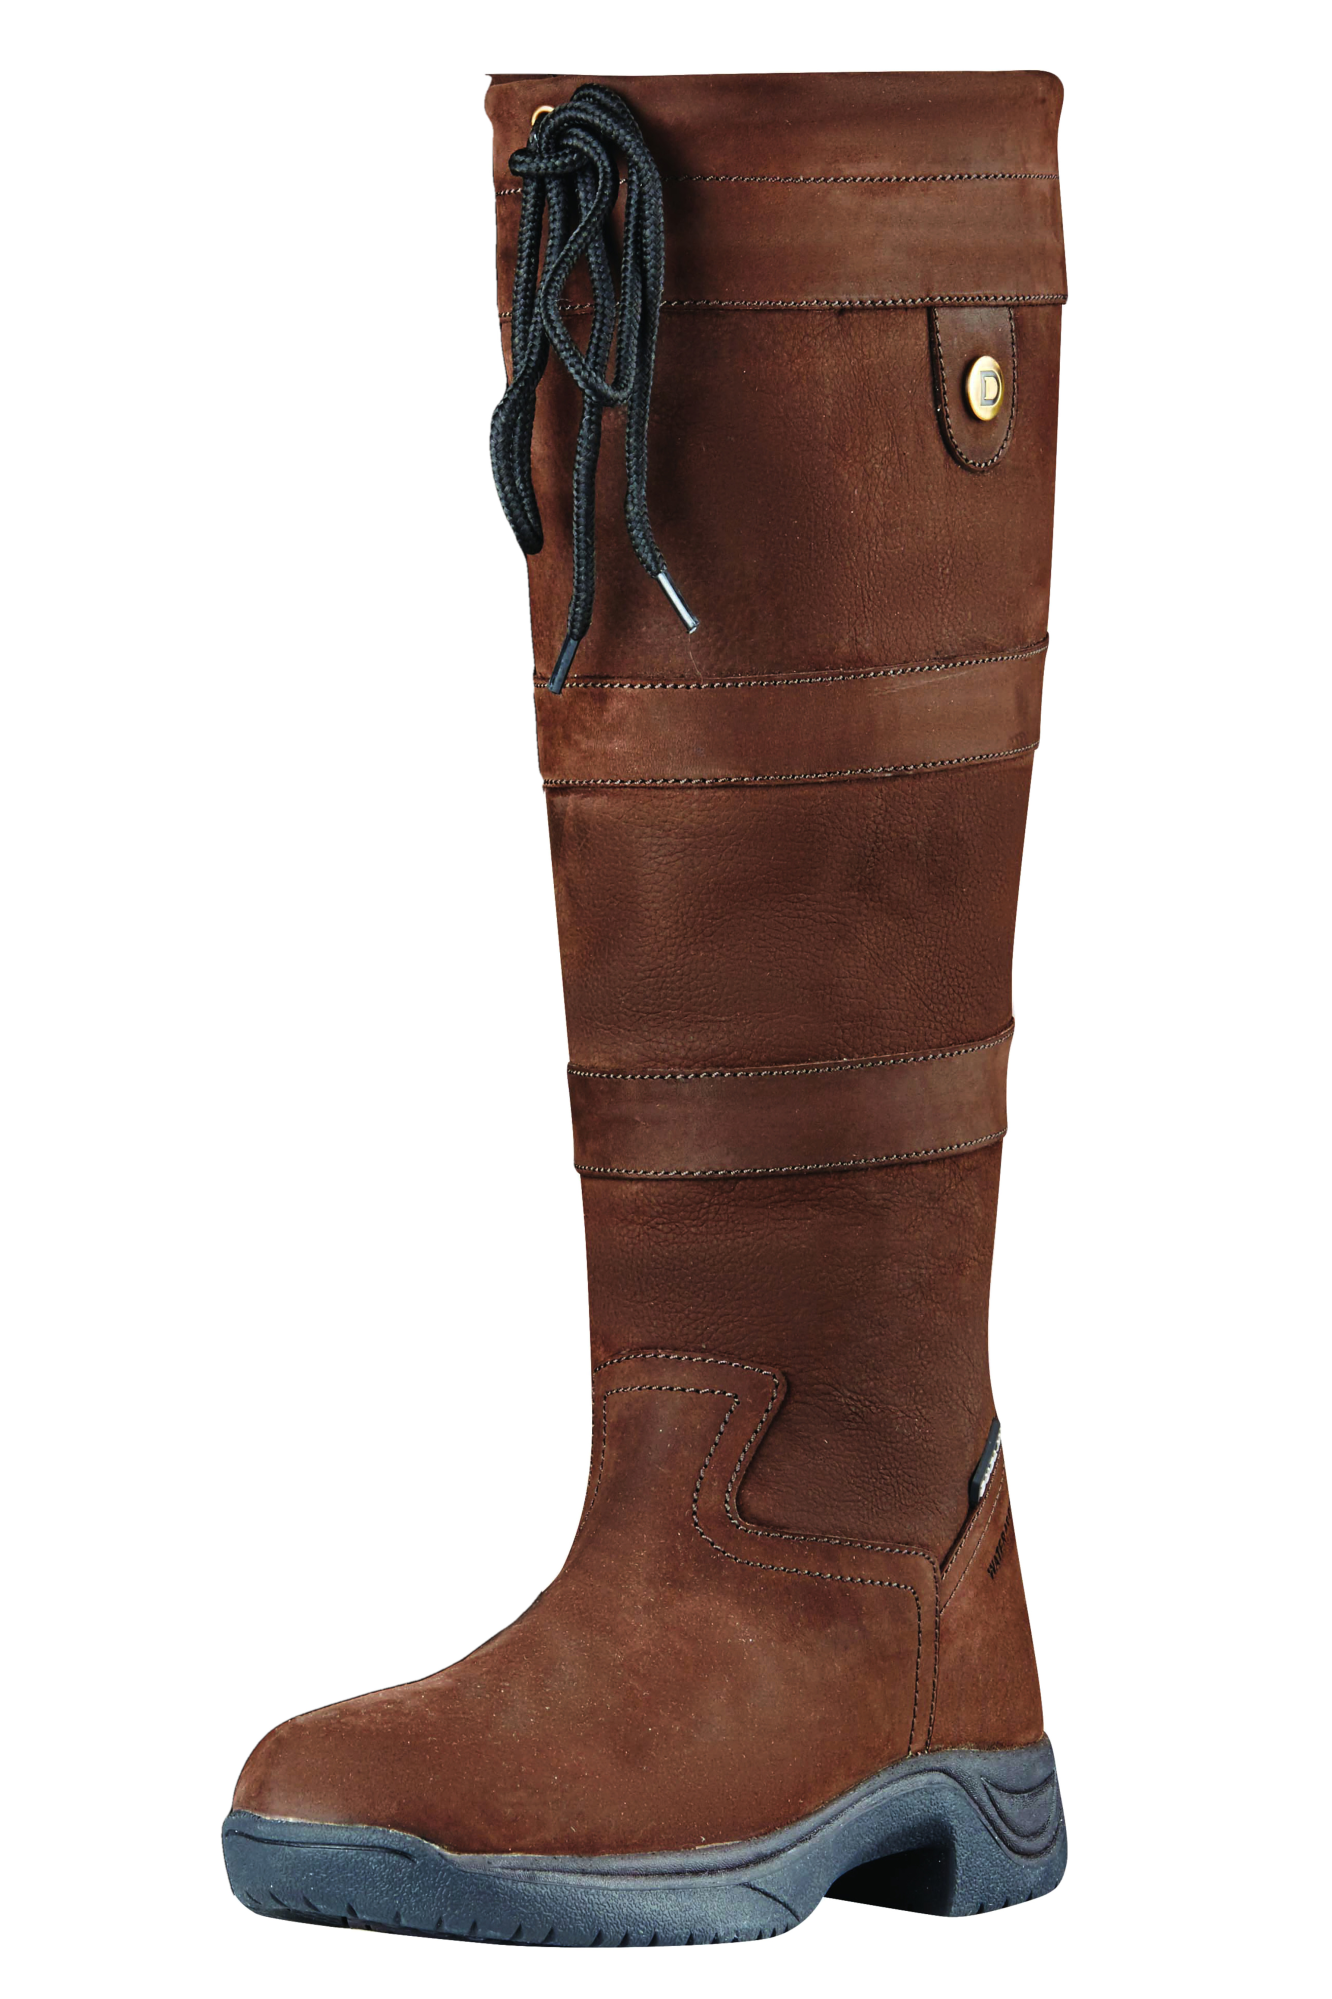 Dublin River Waterproof Stiefel III - NEW STYLE - Waterproof River Membrane - Chocolate 58d747